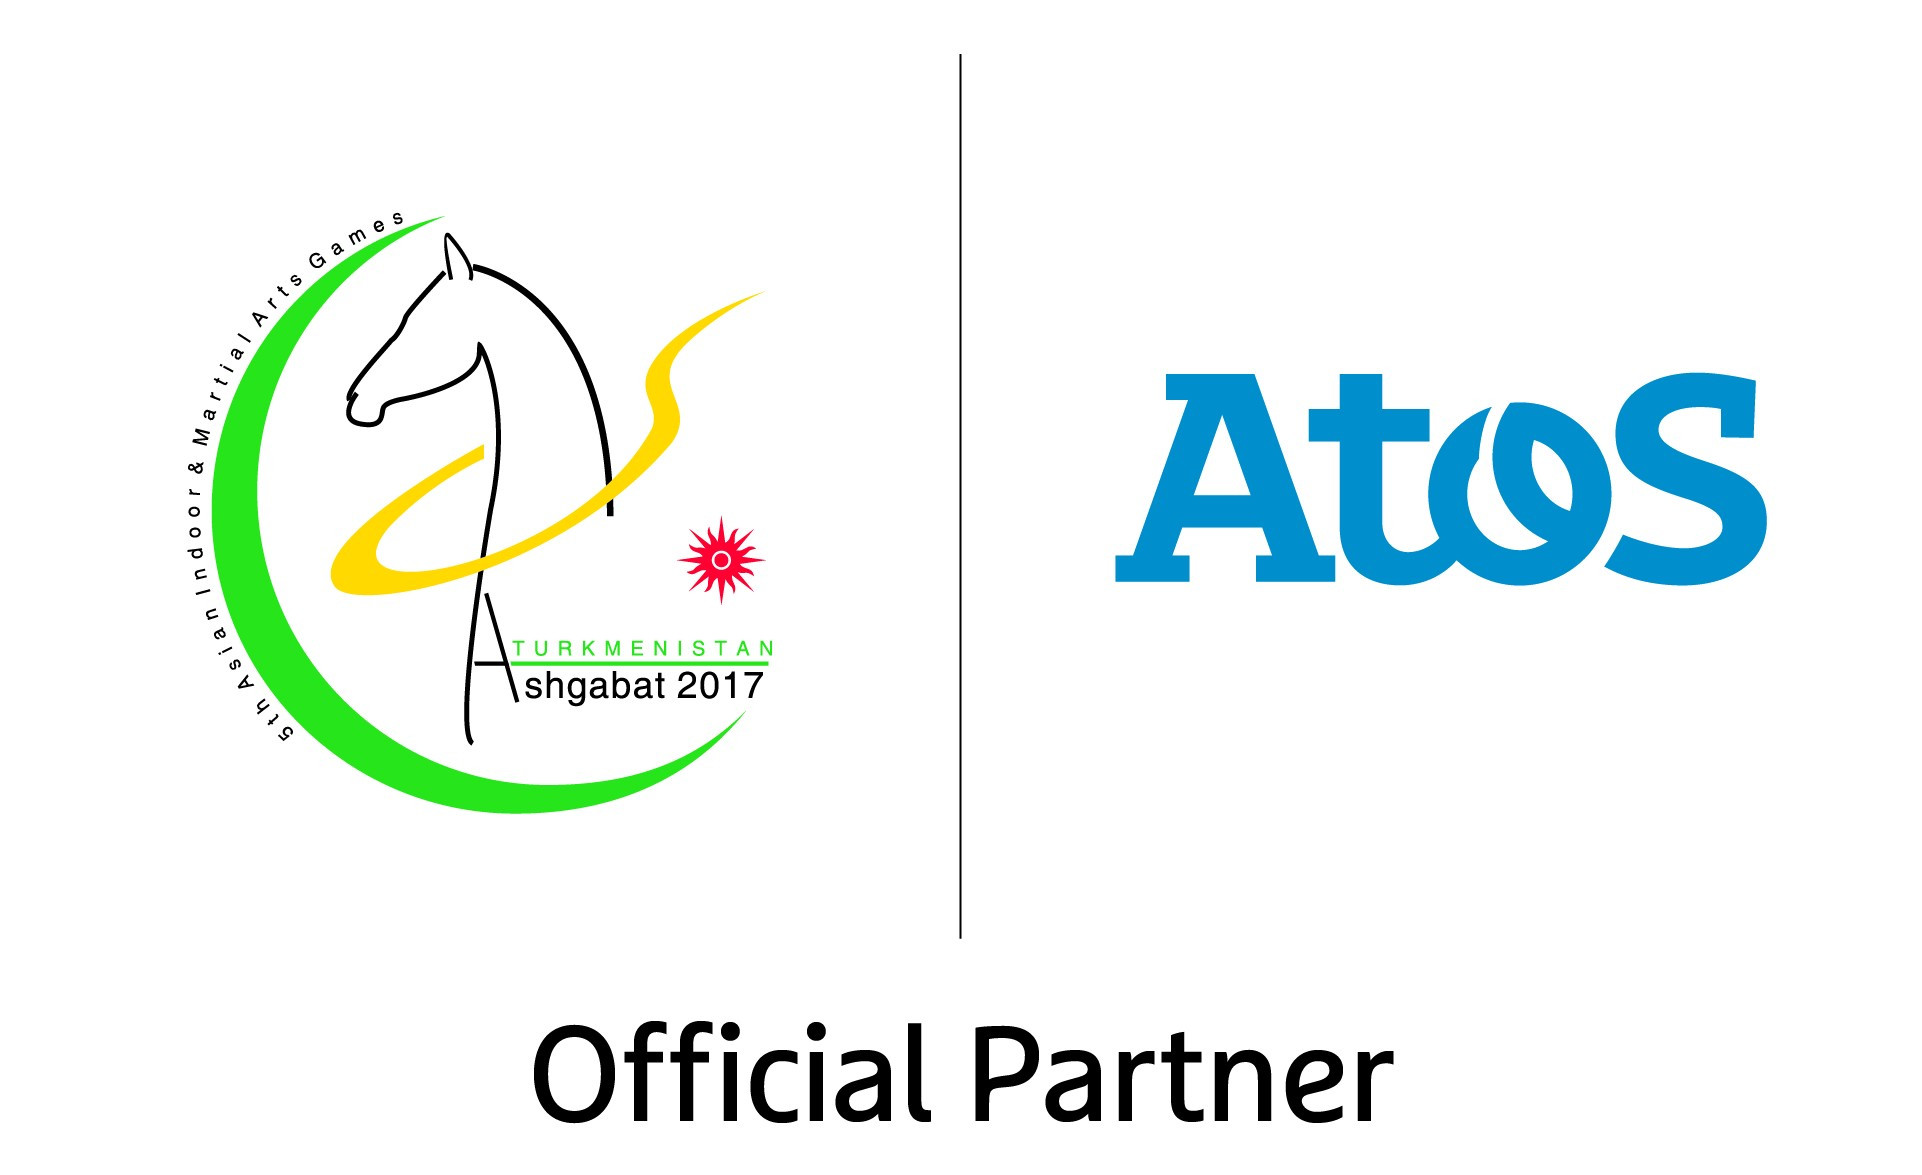 Ashgabat 2017 has announced that Atos has signed up as an official partner of the Asian Indoor and Martial Arts Games ©Ashgabat 2017